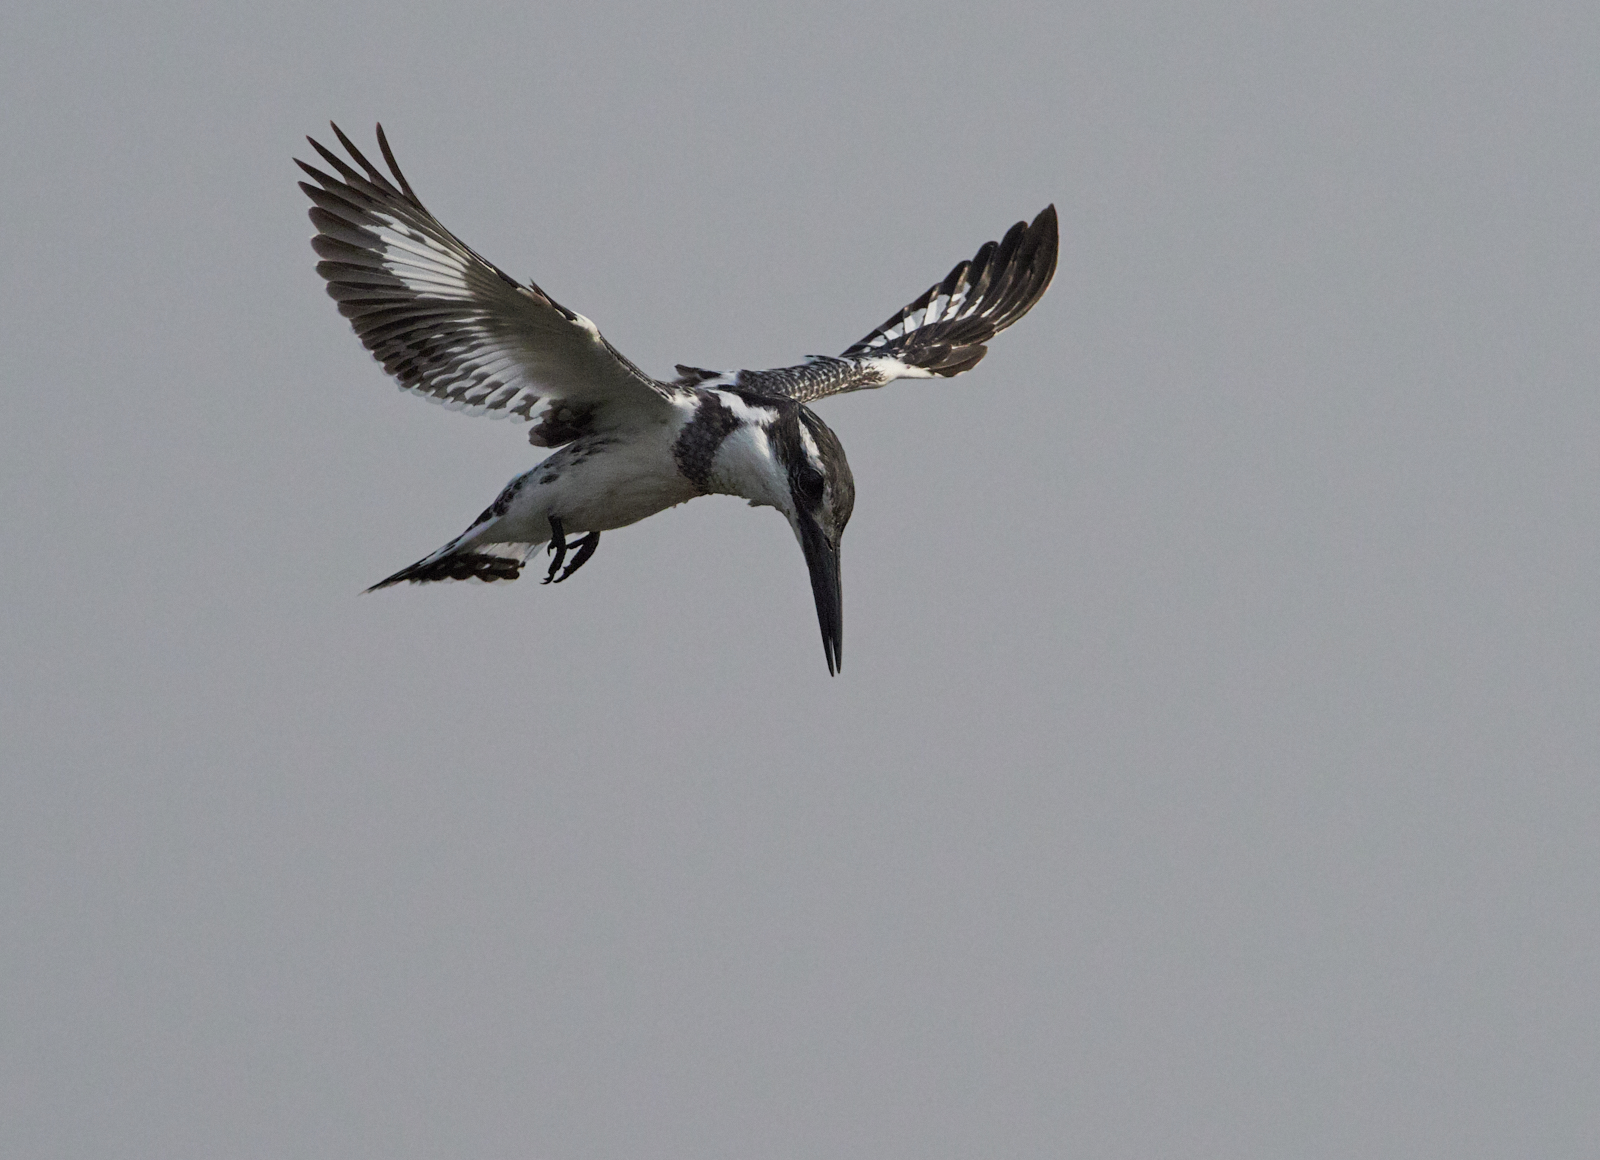 Hovering Pied Kingfisher 1600x1200 sRGB.jpg